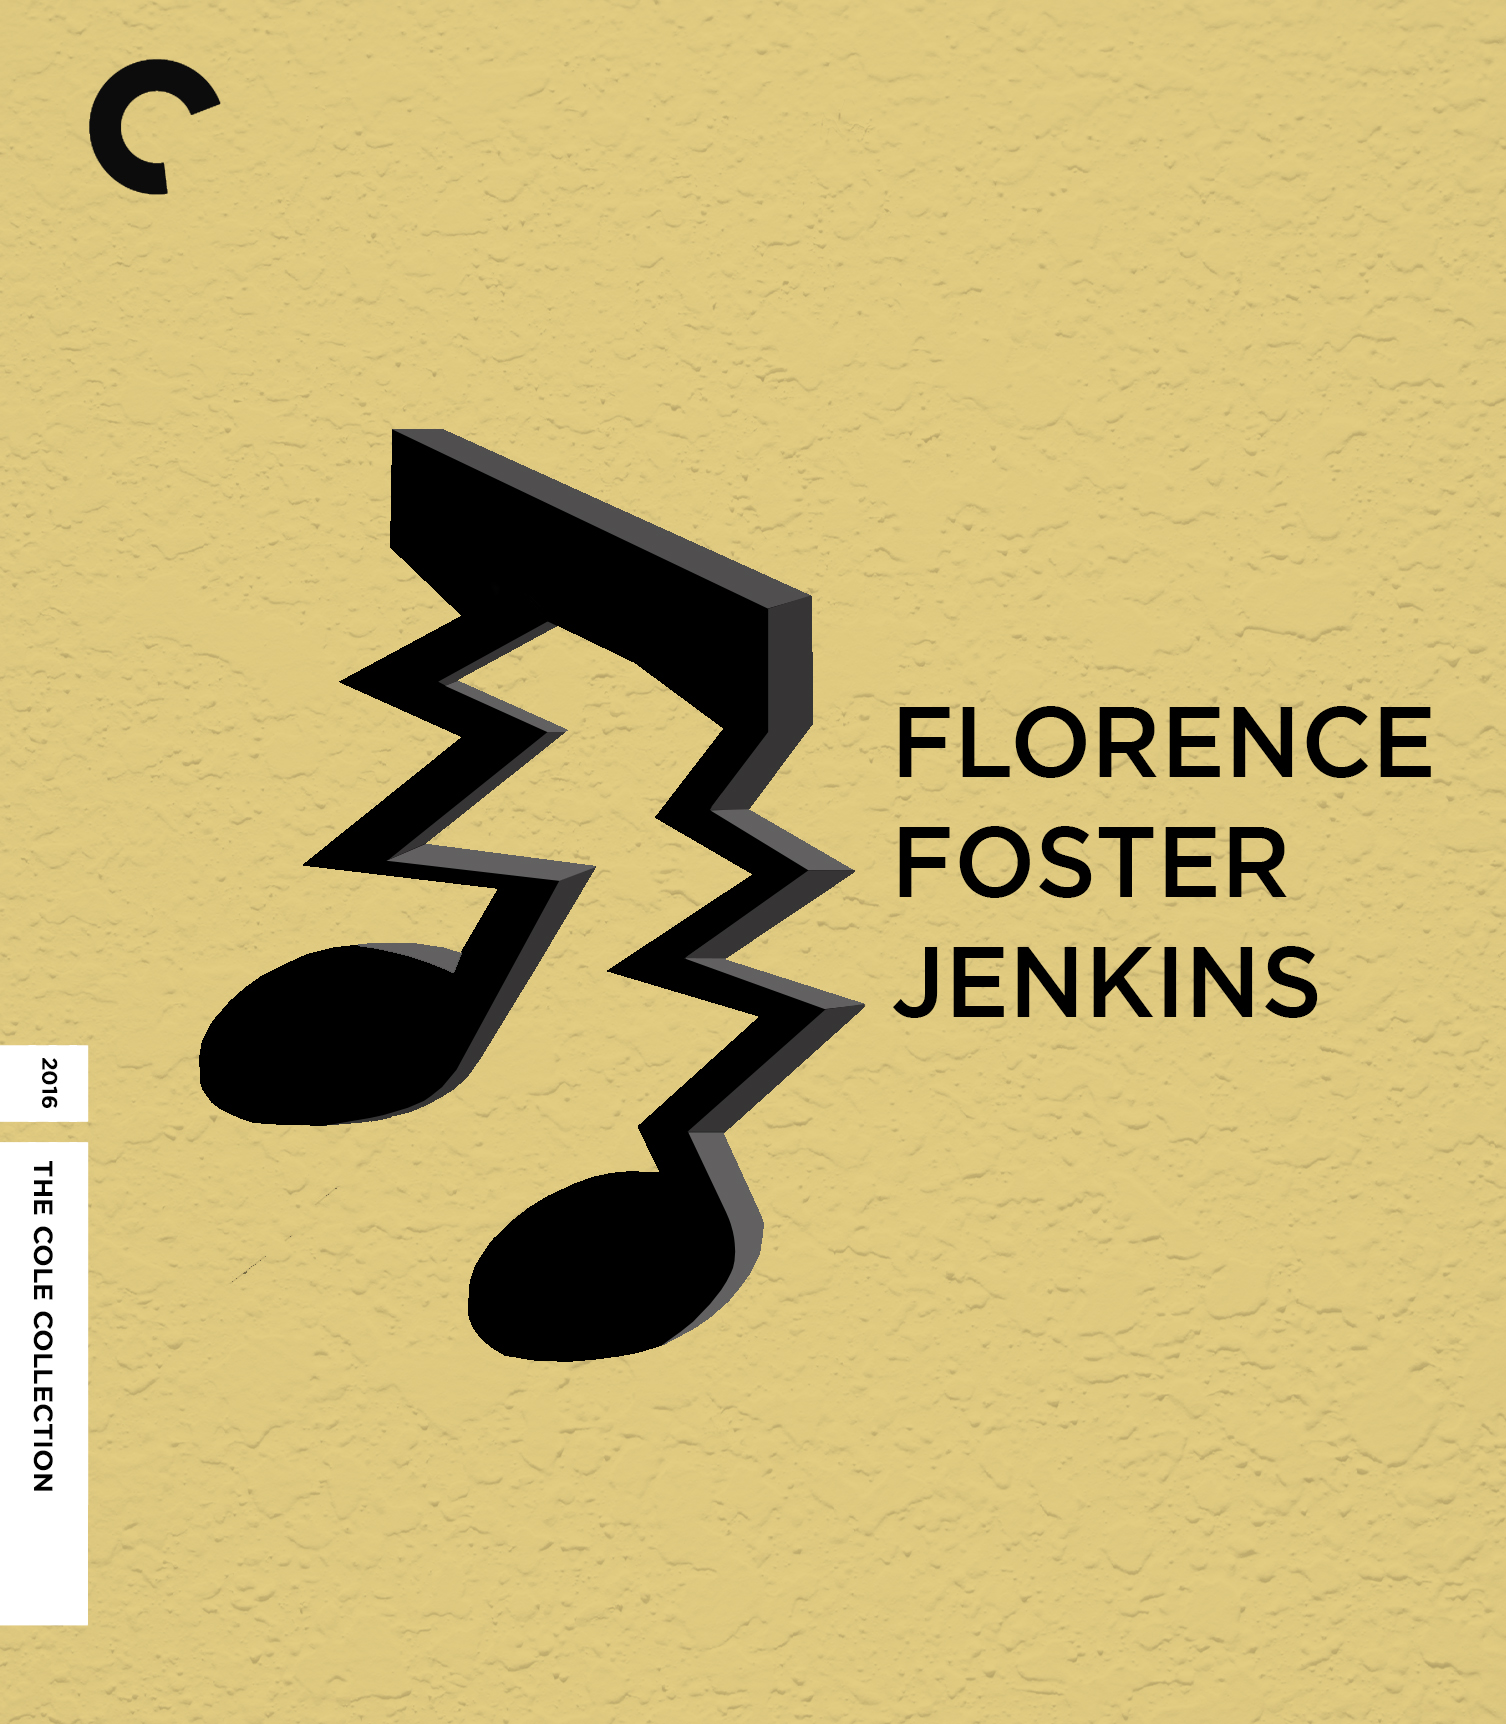 FlorenceFoster_Cover.jpg